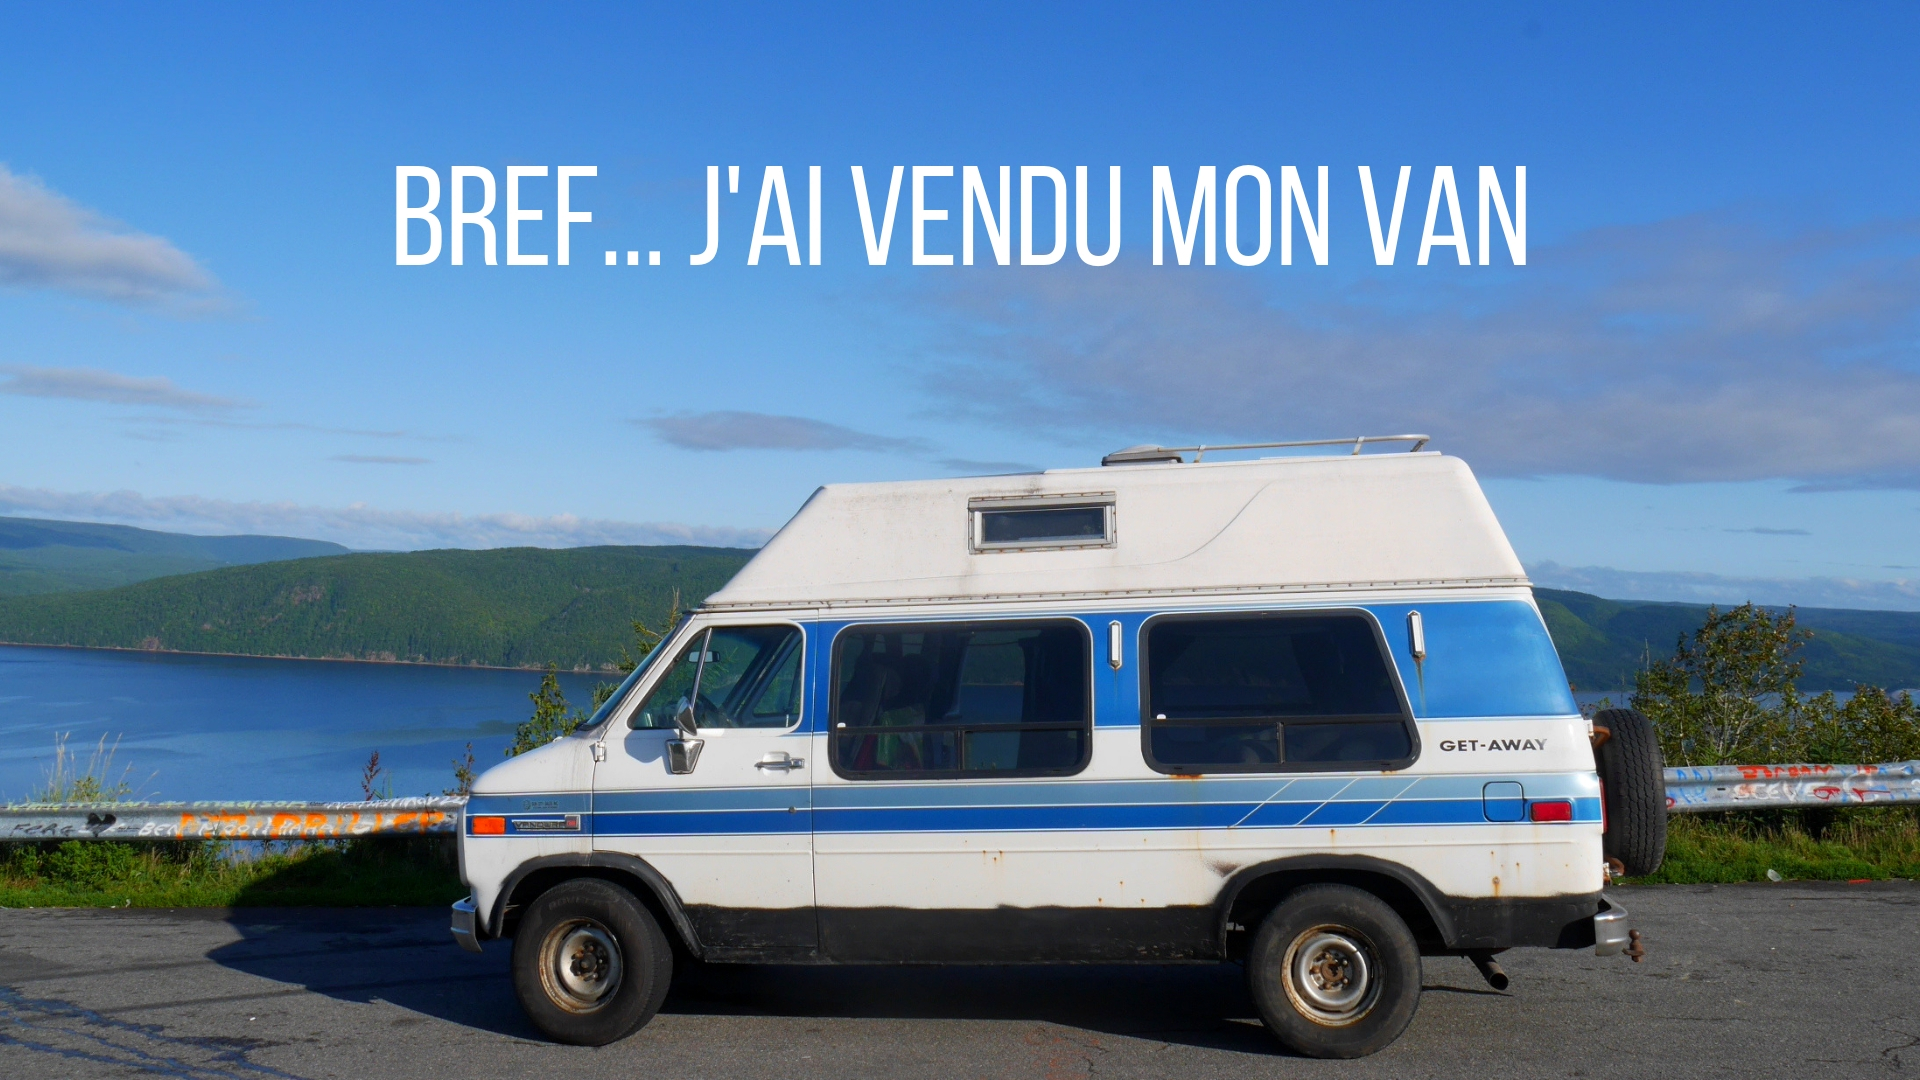 vendre van canada experience pvt road-trip blog voyage arpenter le chemin